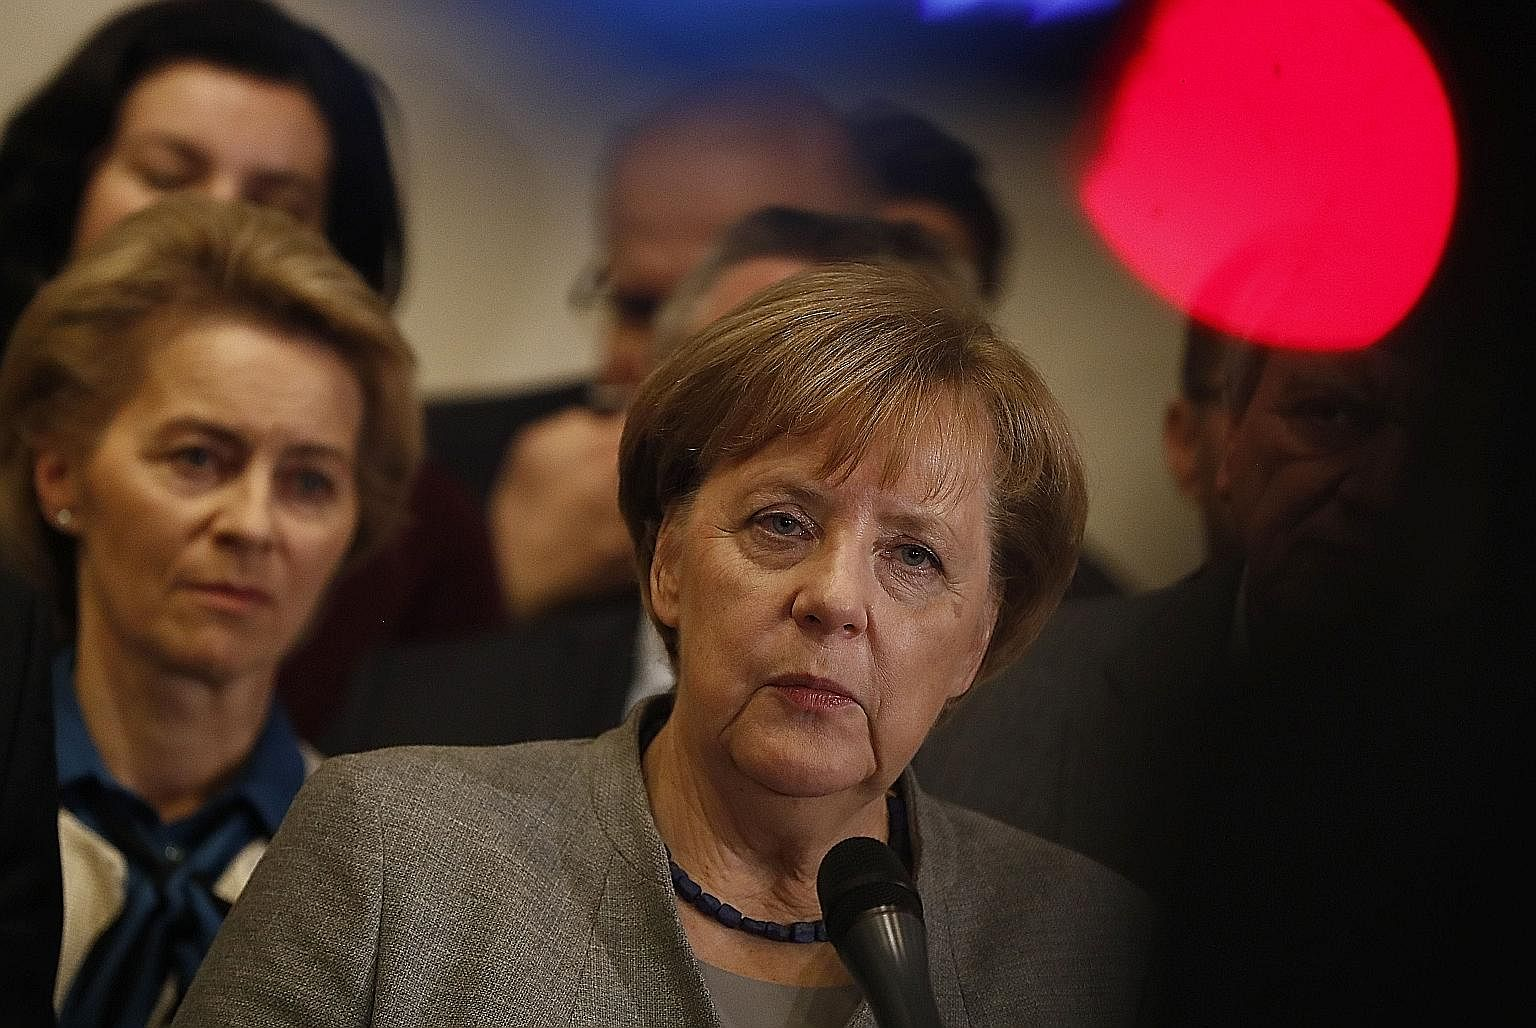 The writer says that more people have to recognise that if Dr Angela Merkel's long rule is threatened, it need not be a sign of liberalism in crisis but rather an indicator that it could yet be restored to health.